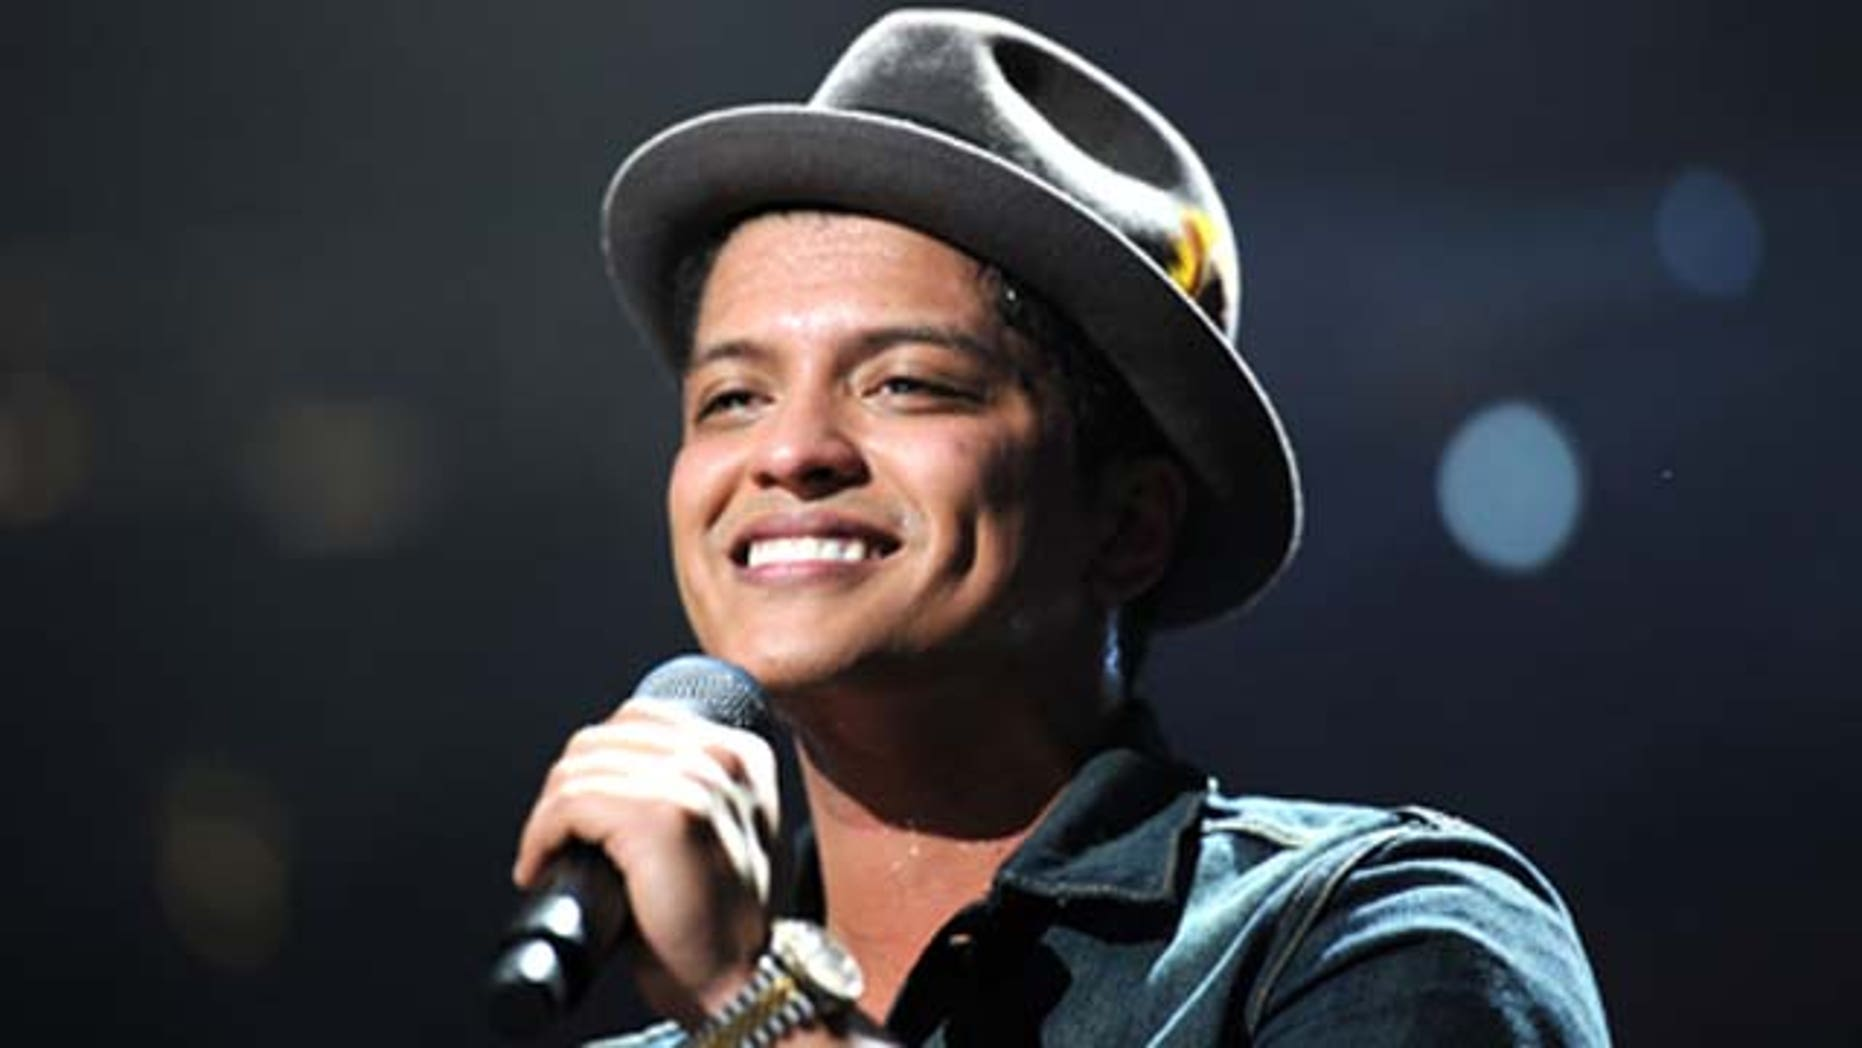 Bruno Mars will donate 24,000 meals to the less fortunate in Hawaii for Thanksgiving.